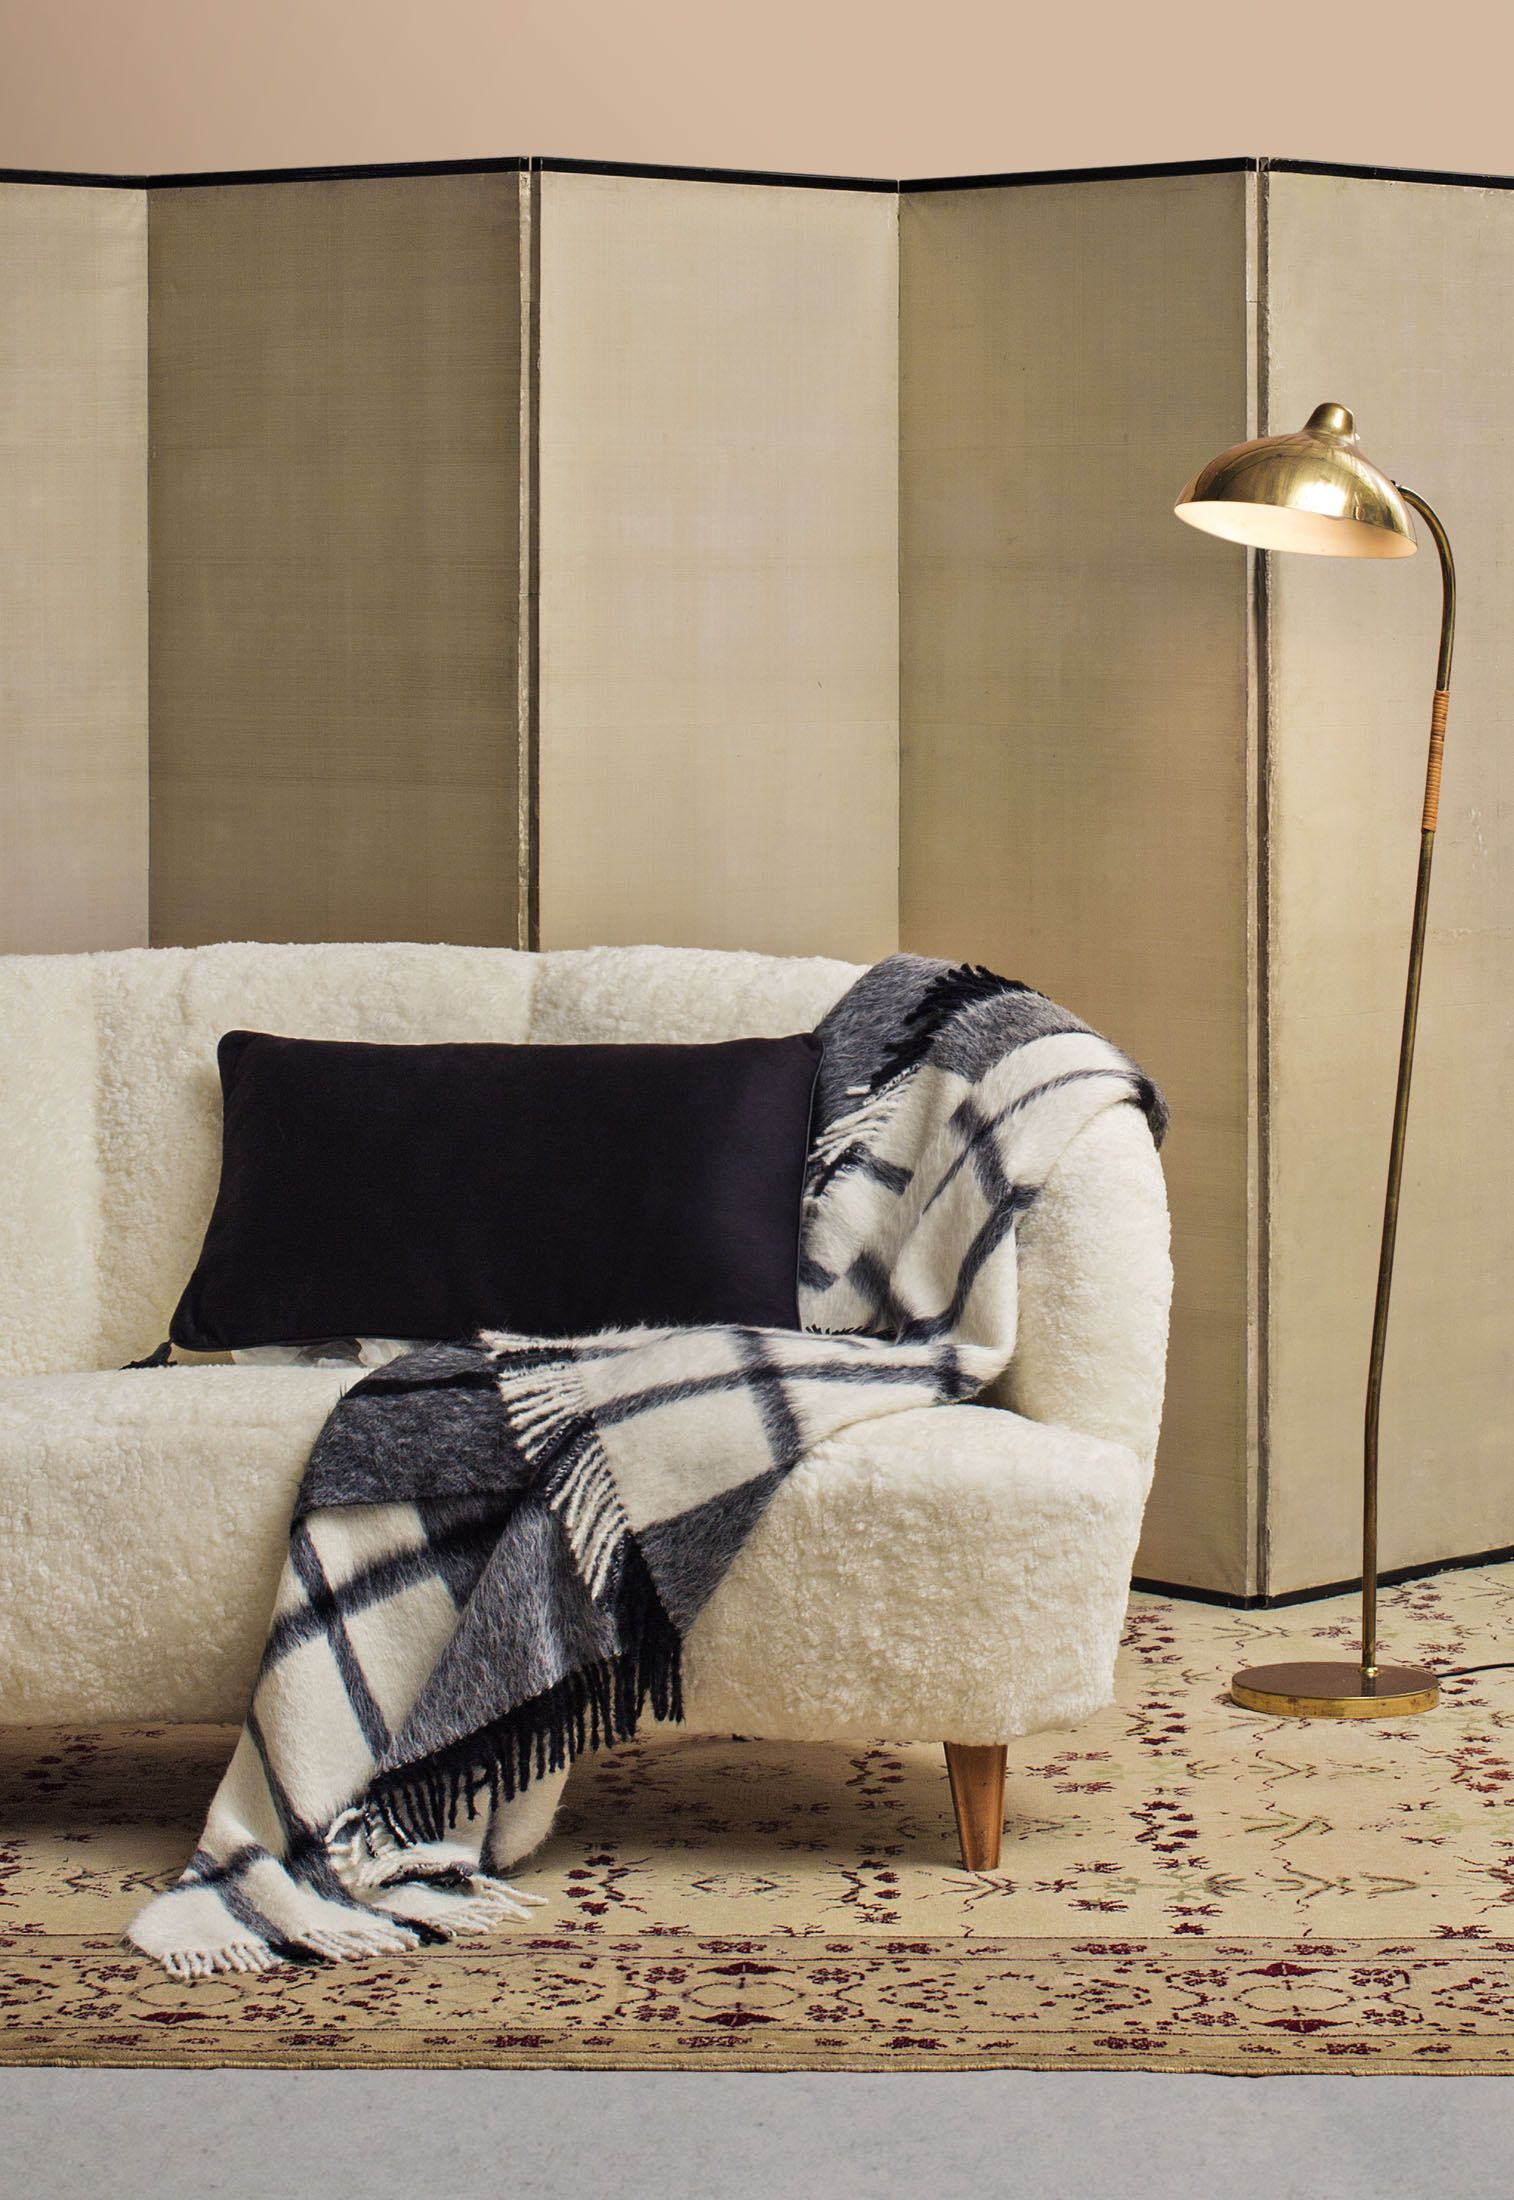 reputable site 03bf3 682aa Relaxed elegance at home with alpaca plaid and cashmere and ...